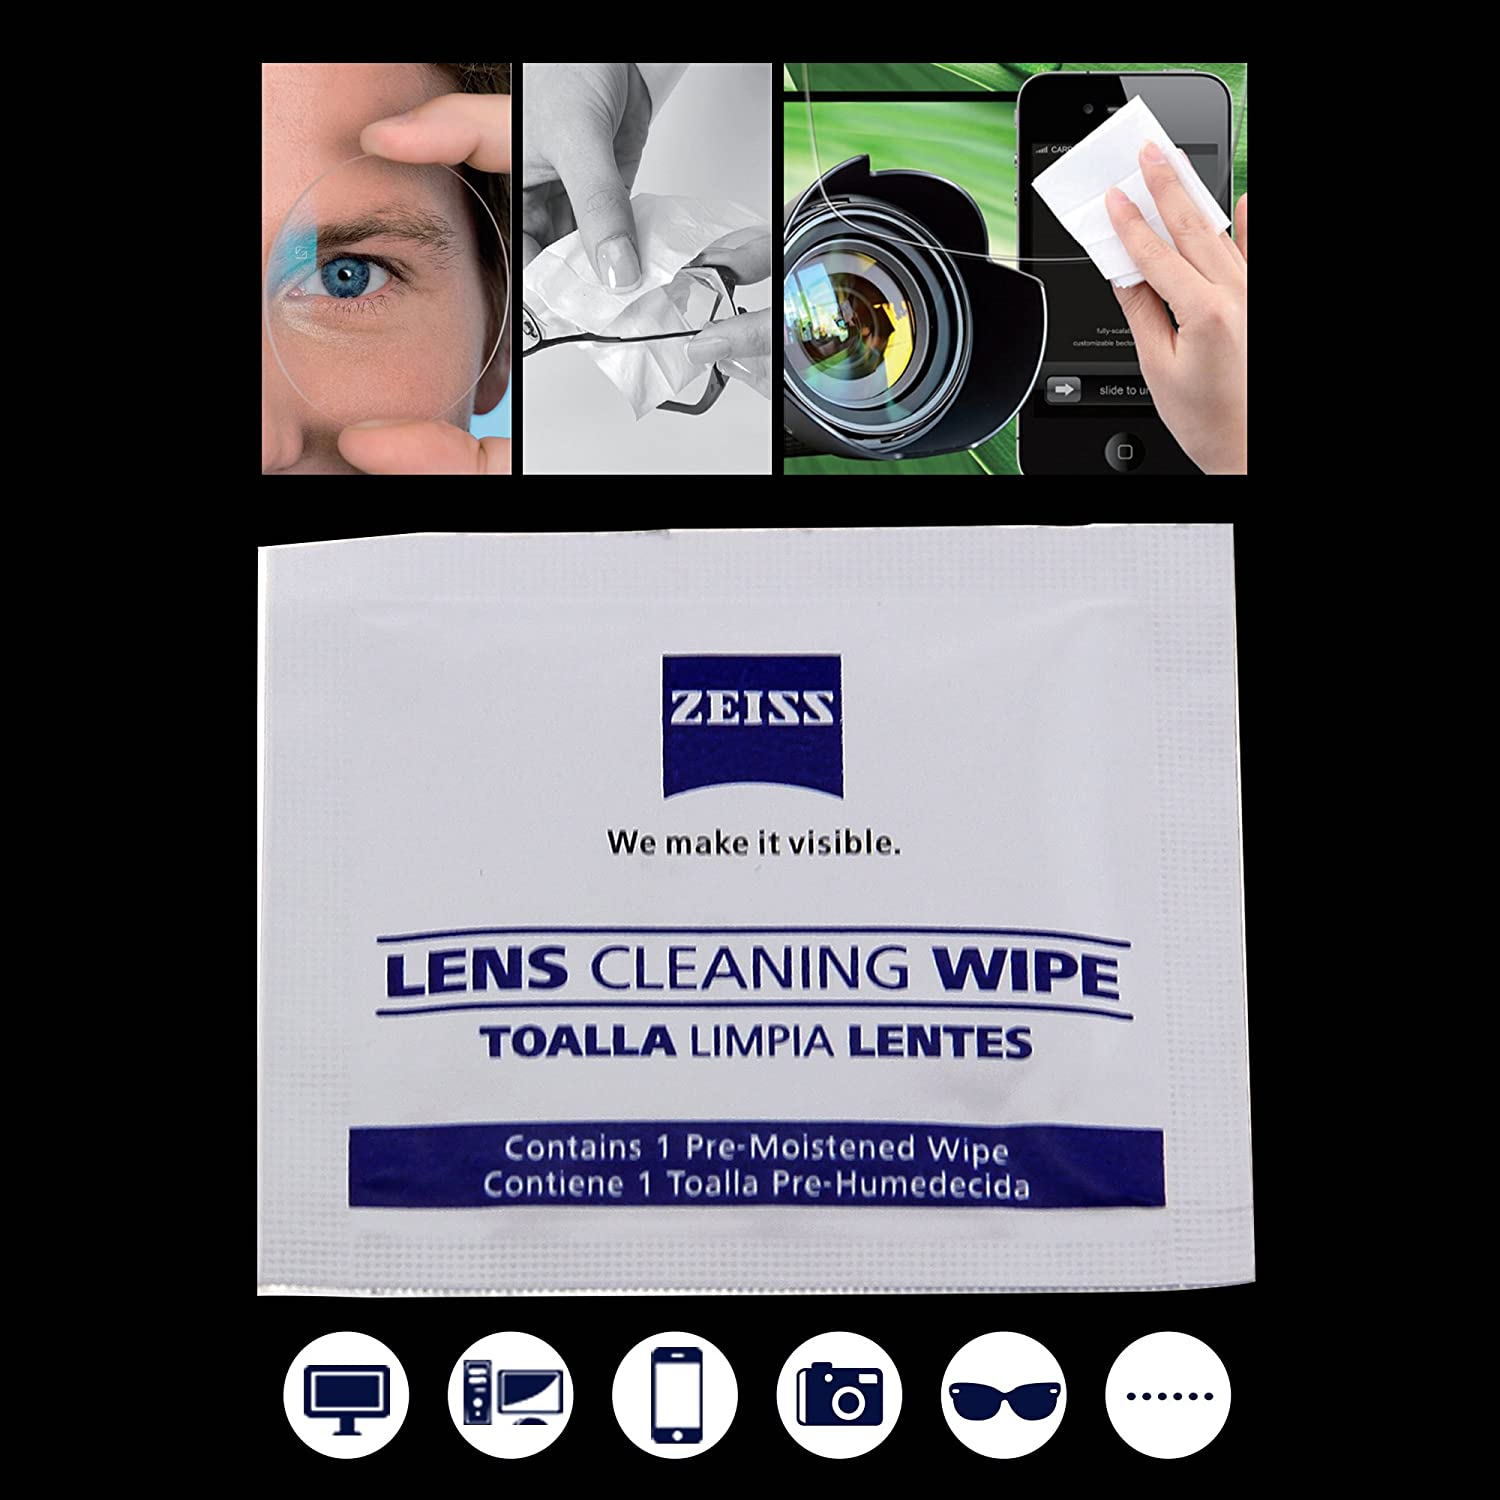 Amazon.com: Zeiss Lens Cleaning Wipe Anti-fog Anti-static Eyeglasses Wiping Paper (2 count): Health & Personal Care